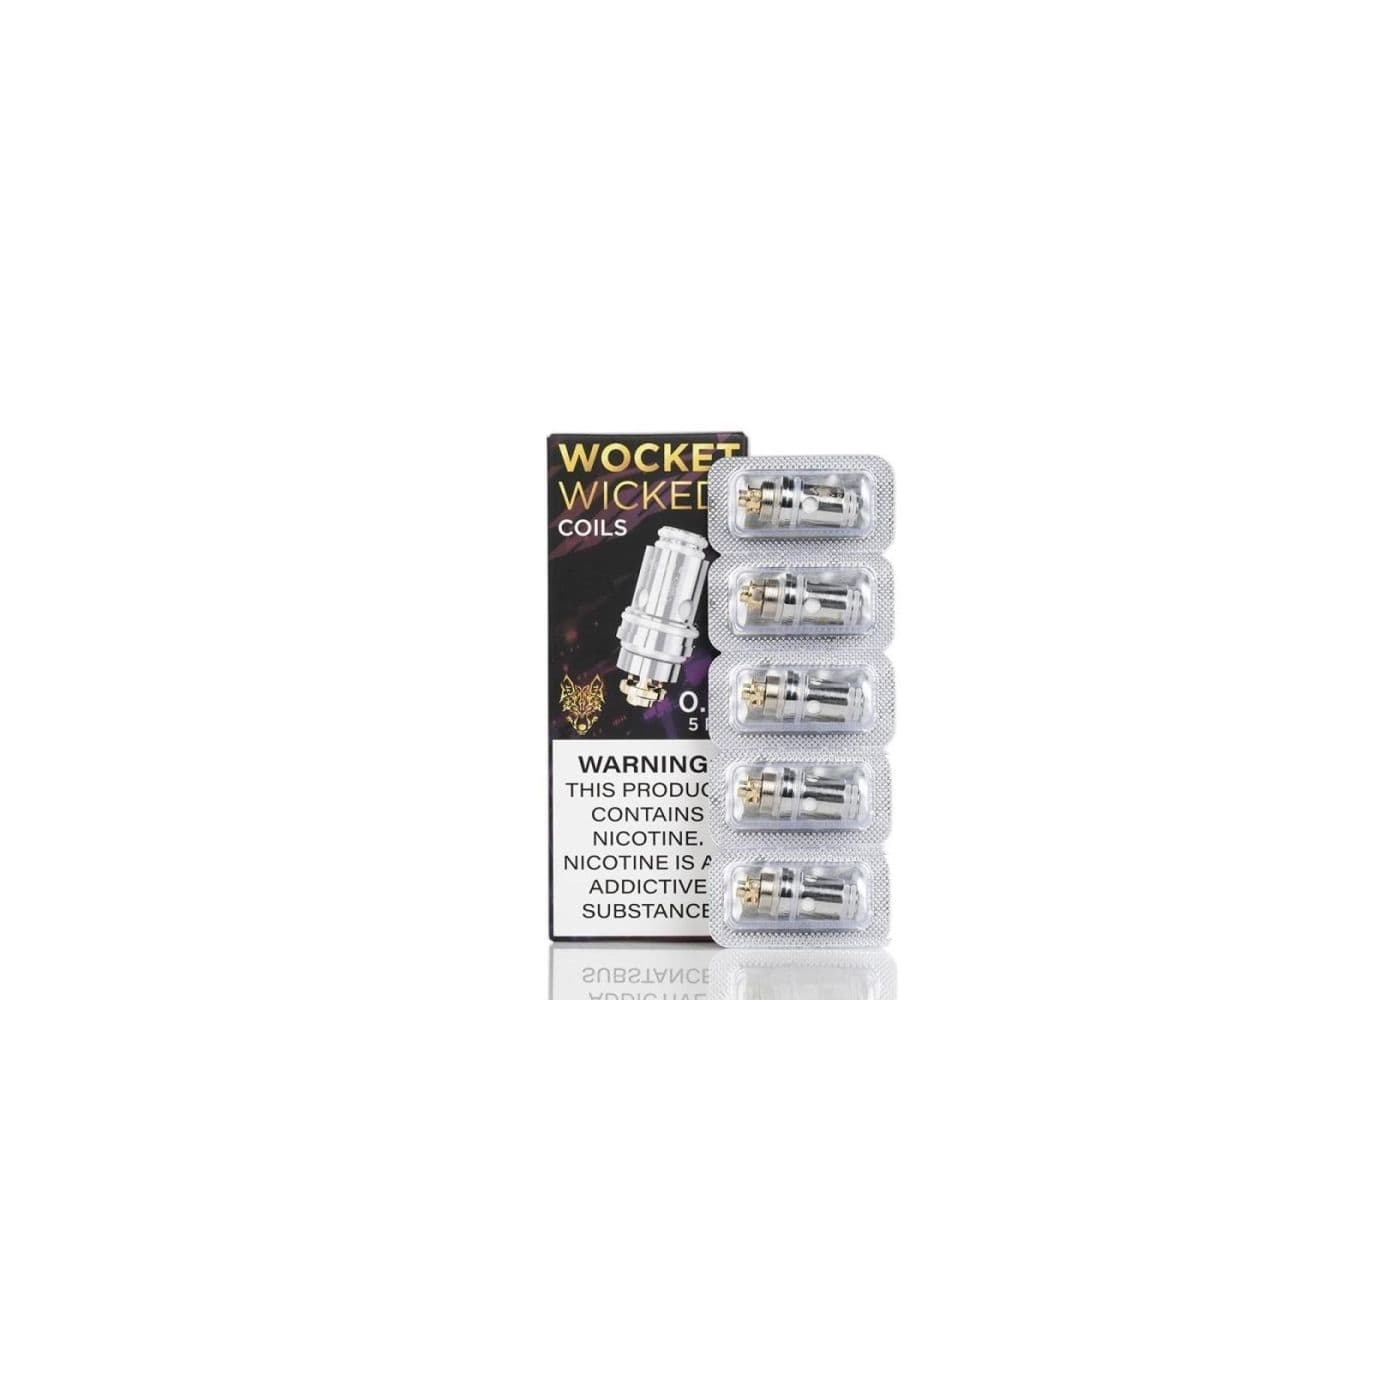 Sigelei Wocket Wicked Coil - 5 Pack